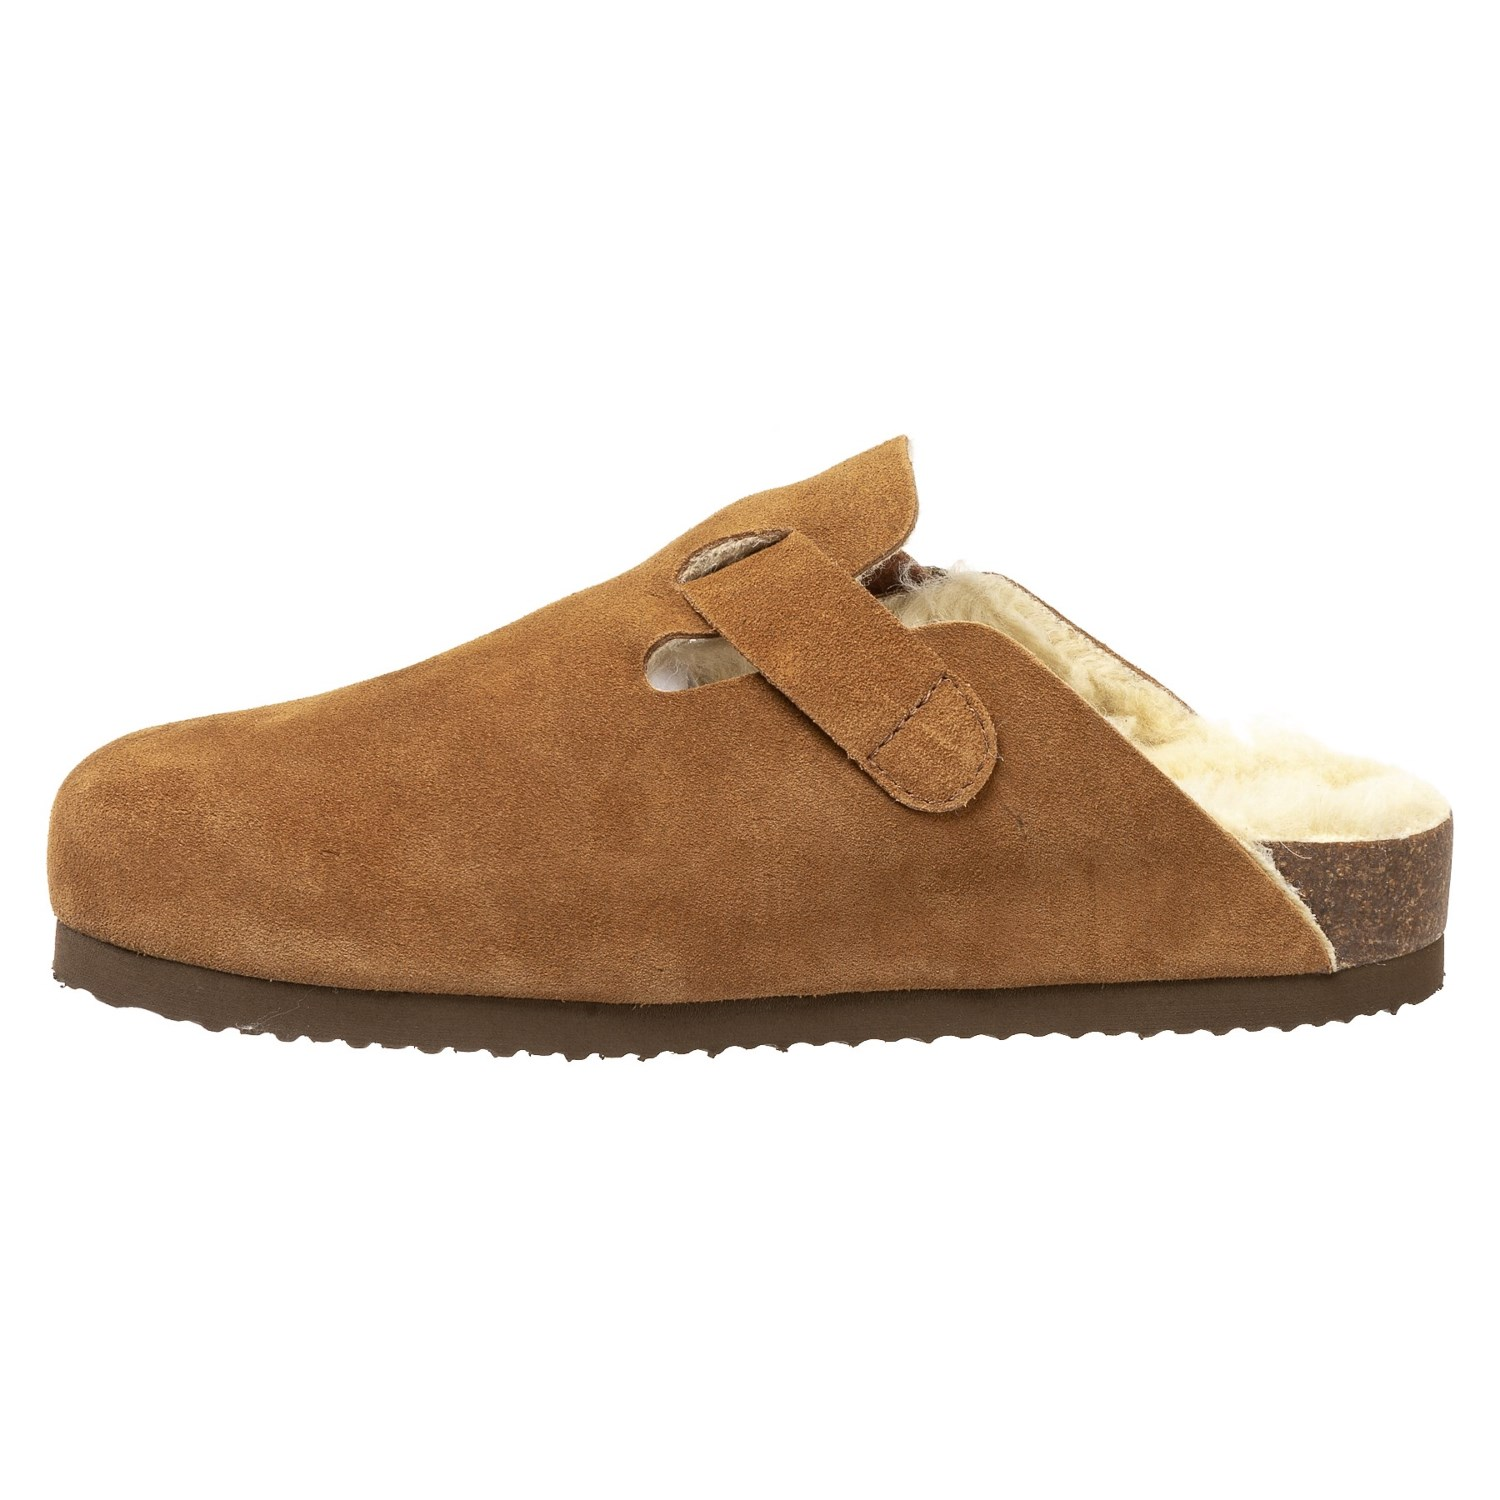 b81cf4849 Eastland Gina Shearling-Lined Clogs (For Women) - Save 33%